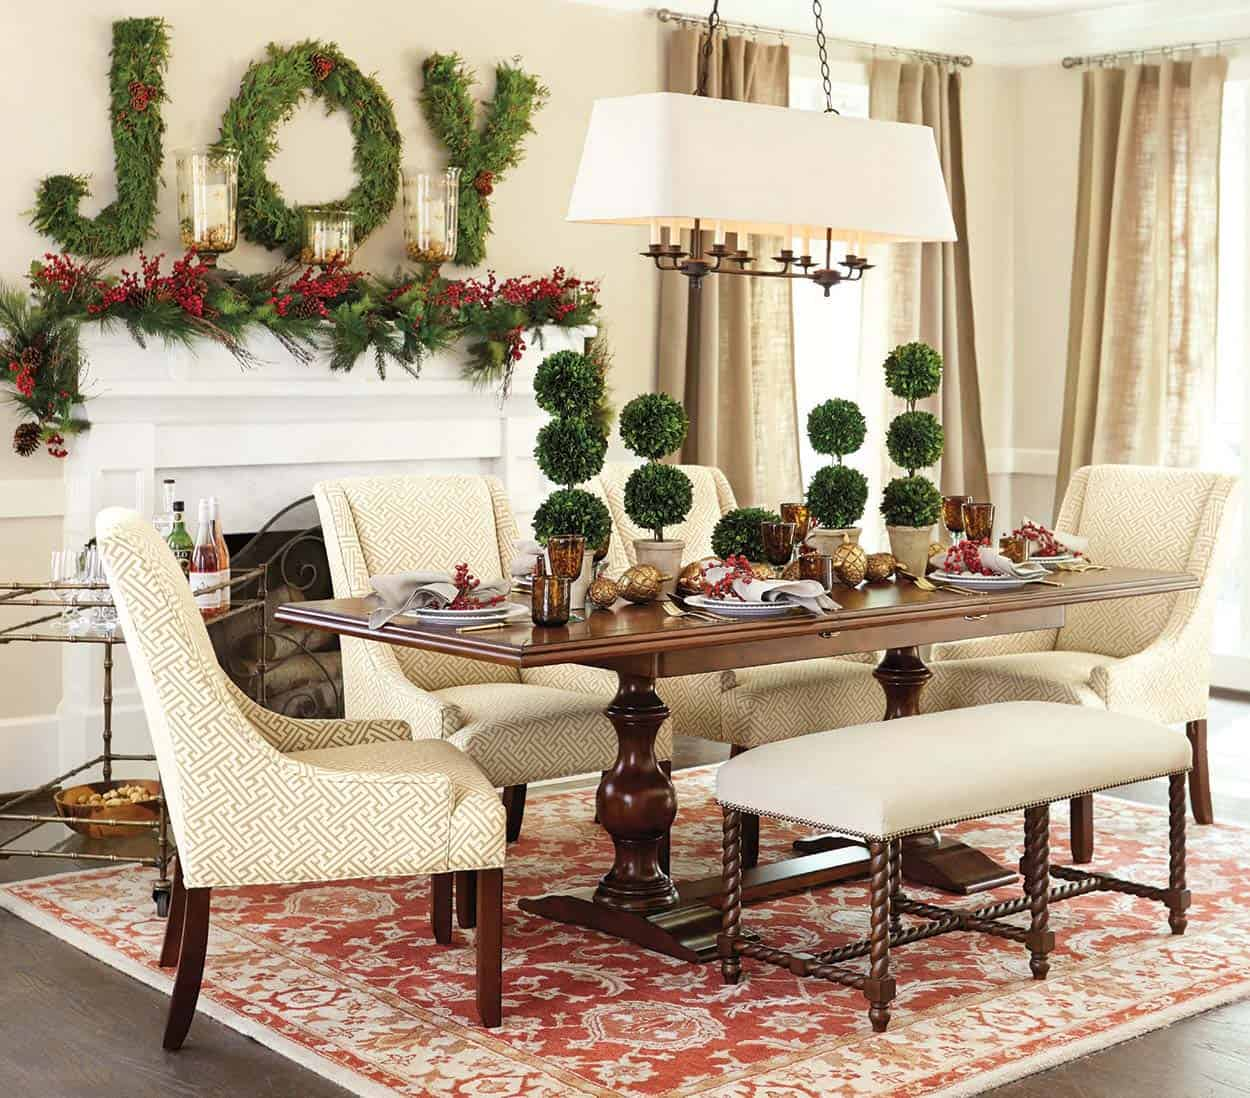 40 fabulous rustic country christmas decorating ideas for Decor 17